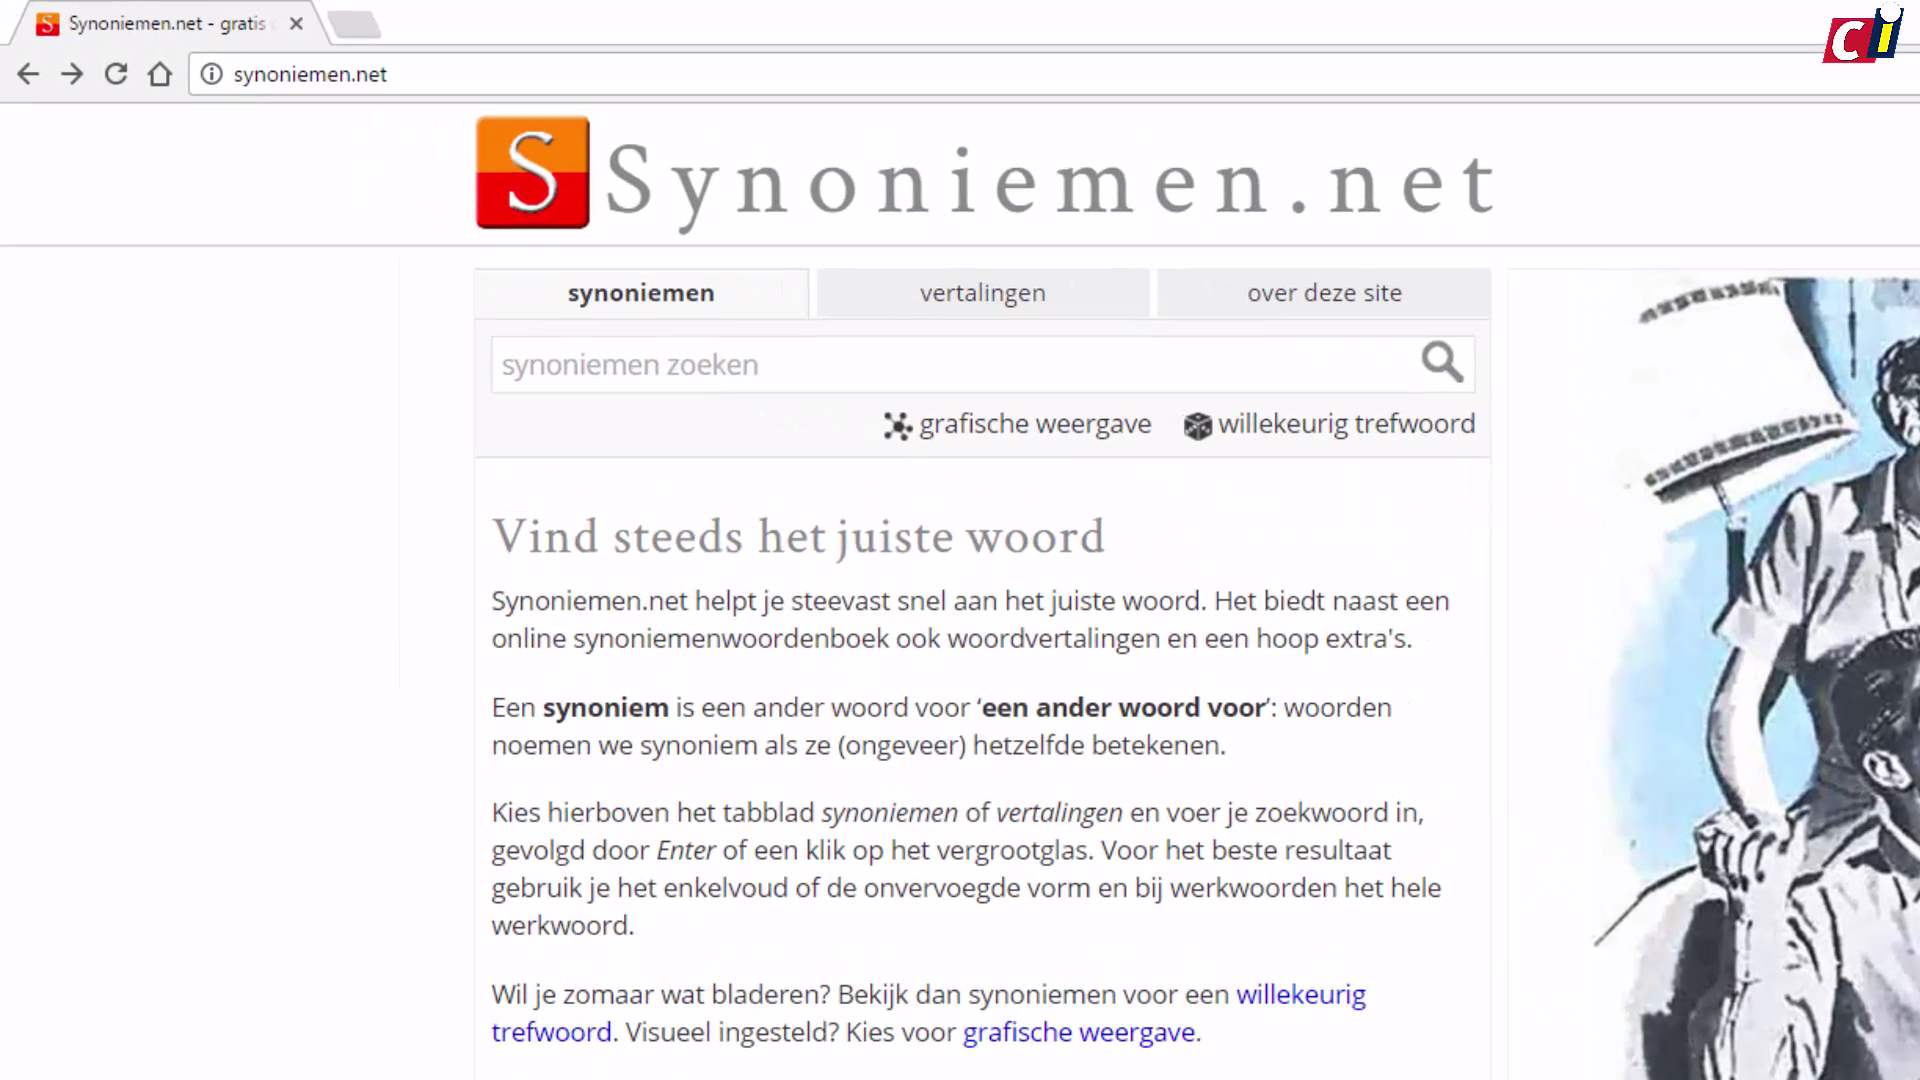 https://cdn2.computeridee.nl/articles/Synoniemennet.png